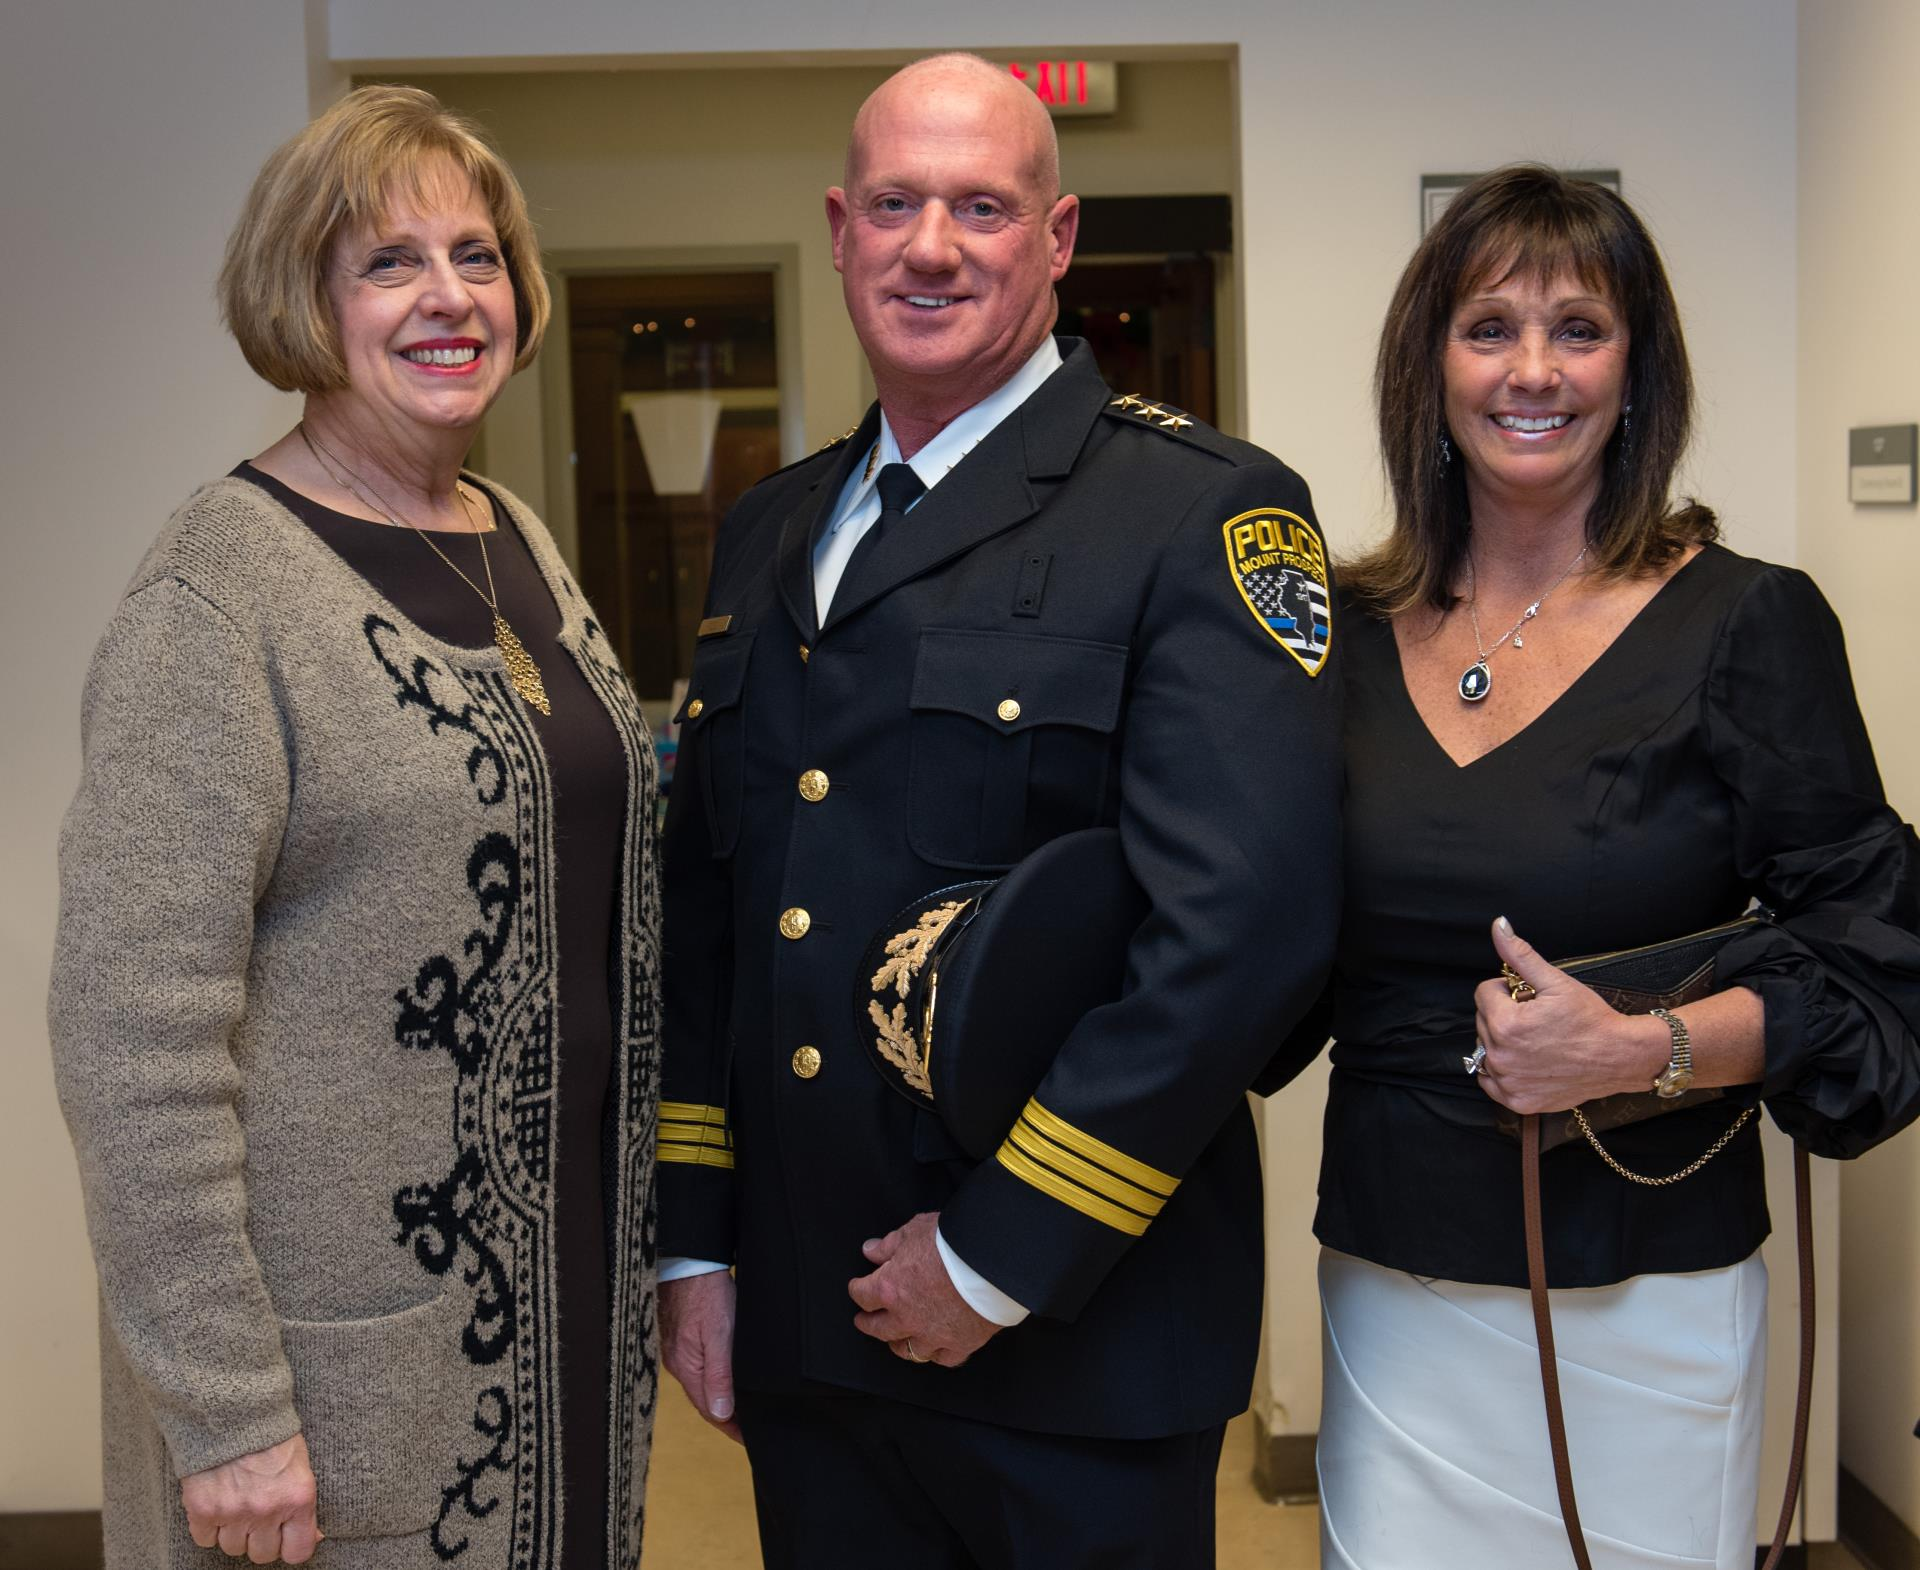 Chief Koziol Swearing-In Ceremony Final-4121